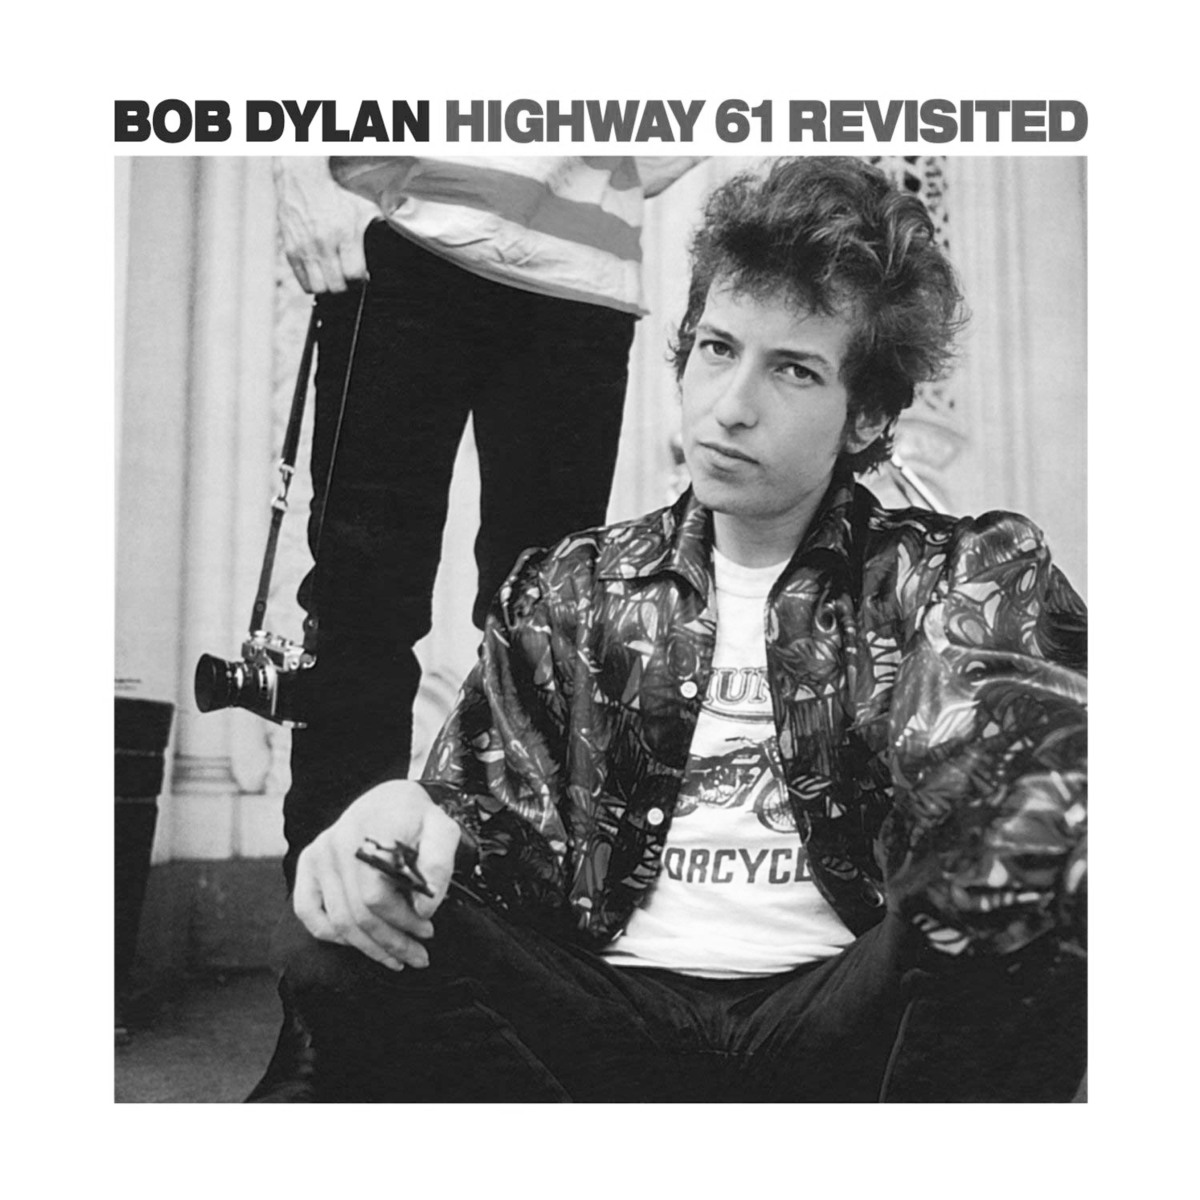 Highway 61 Revisited gets revisited by professors